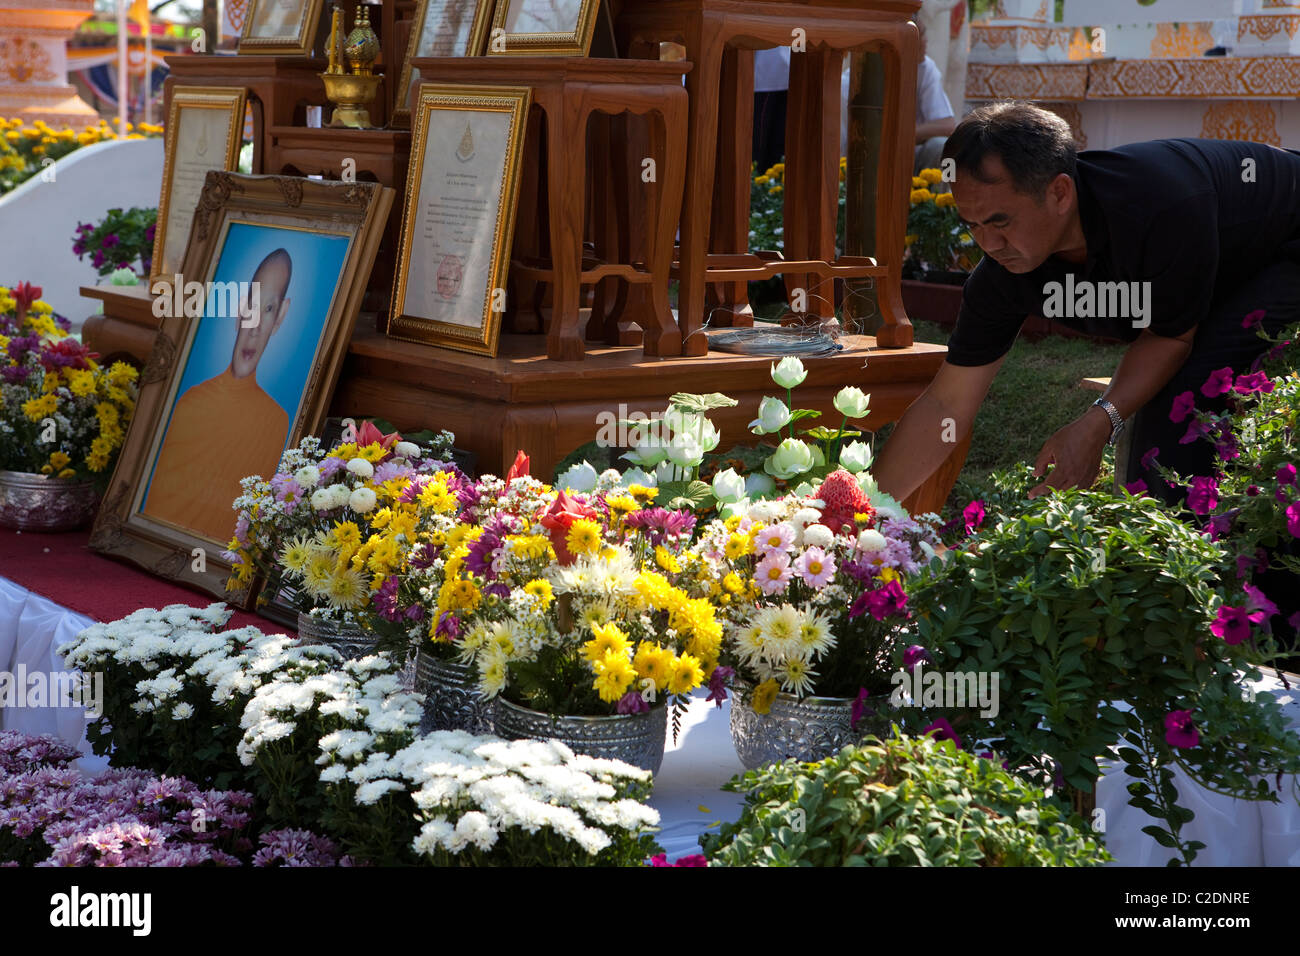 Funeral culture stock photos funeral culture stock images alamy villager voluntary man decorate by flower for great monk krubakumbun paphakaros funeral in izmirmasajfo